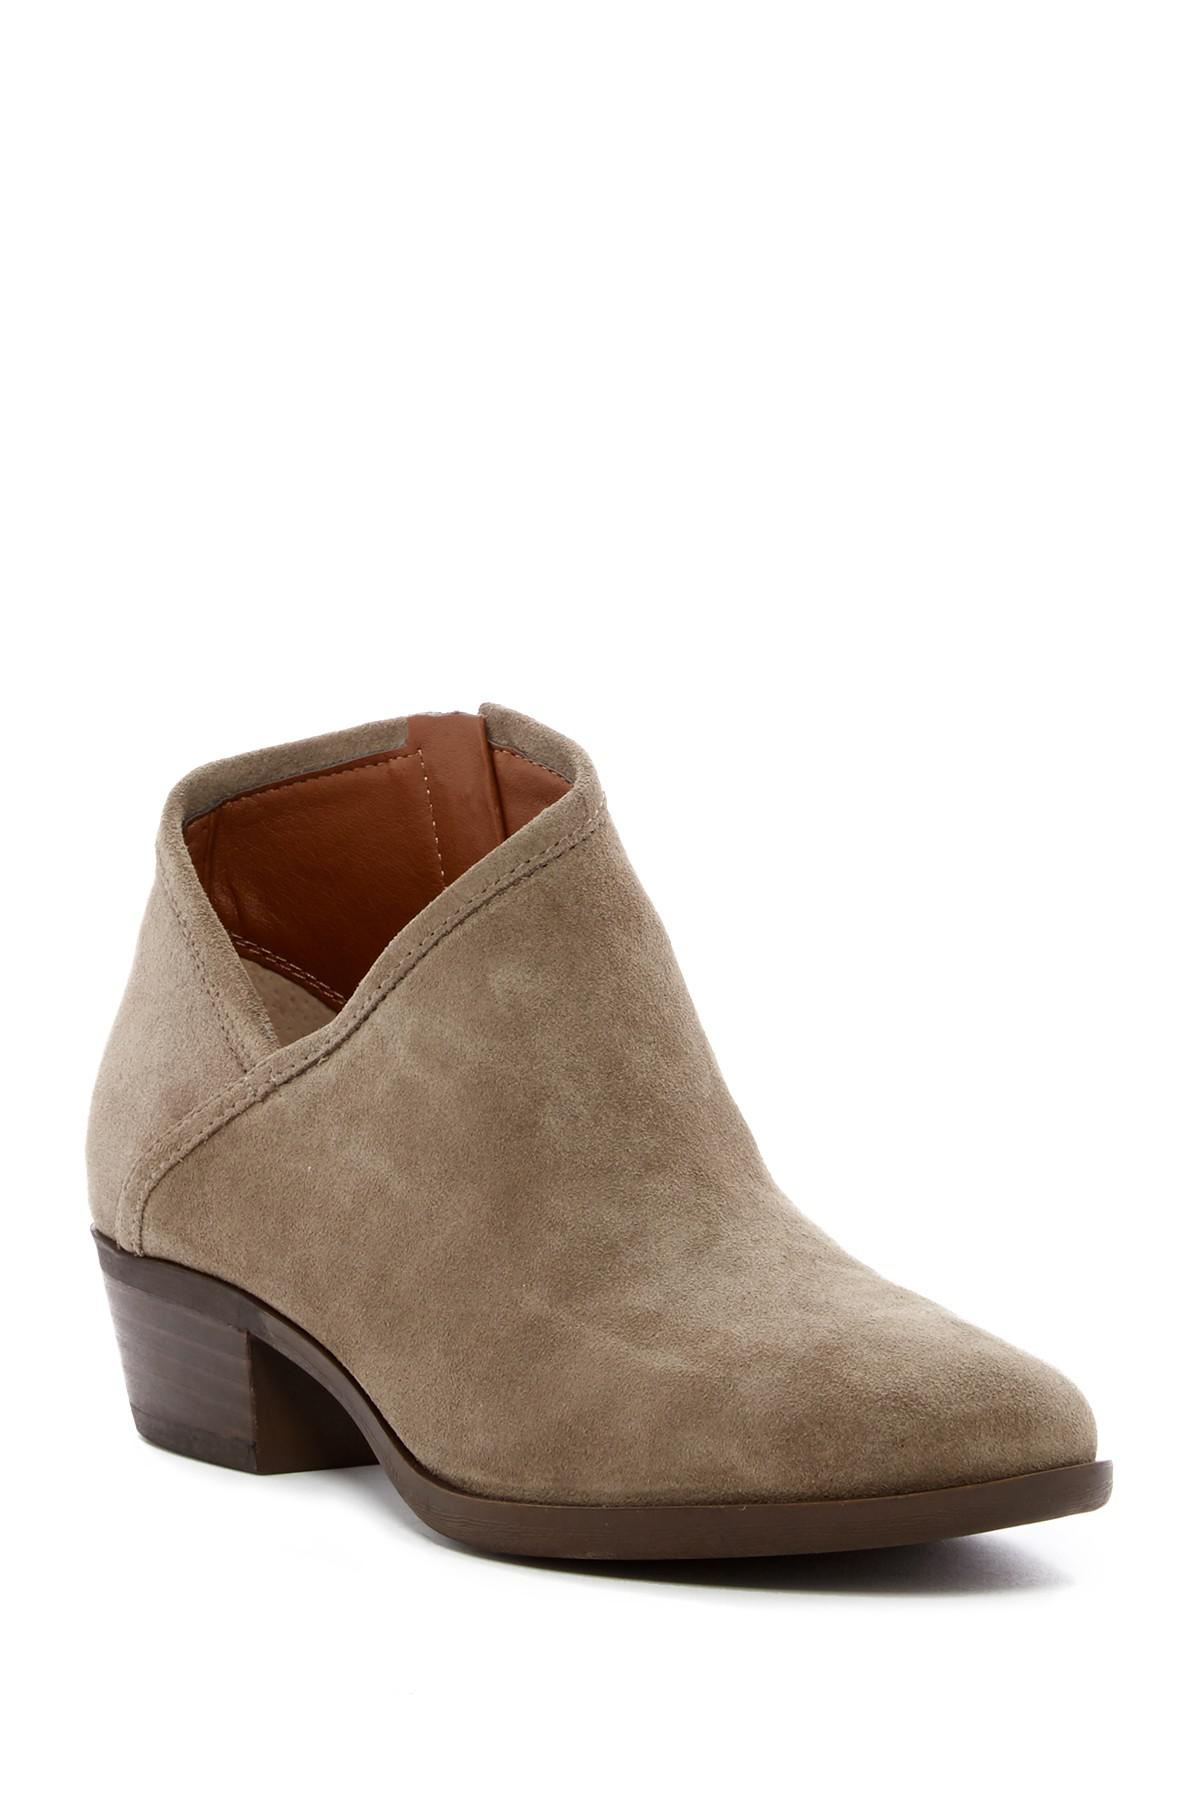 99f863f908a Lyst - Lucky Brand Brekke Ankle Bootie - Multiple Widths Available ...